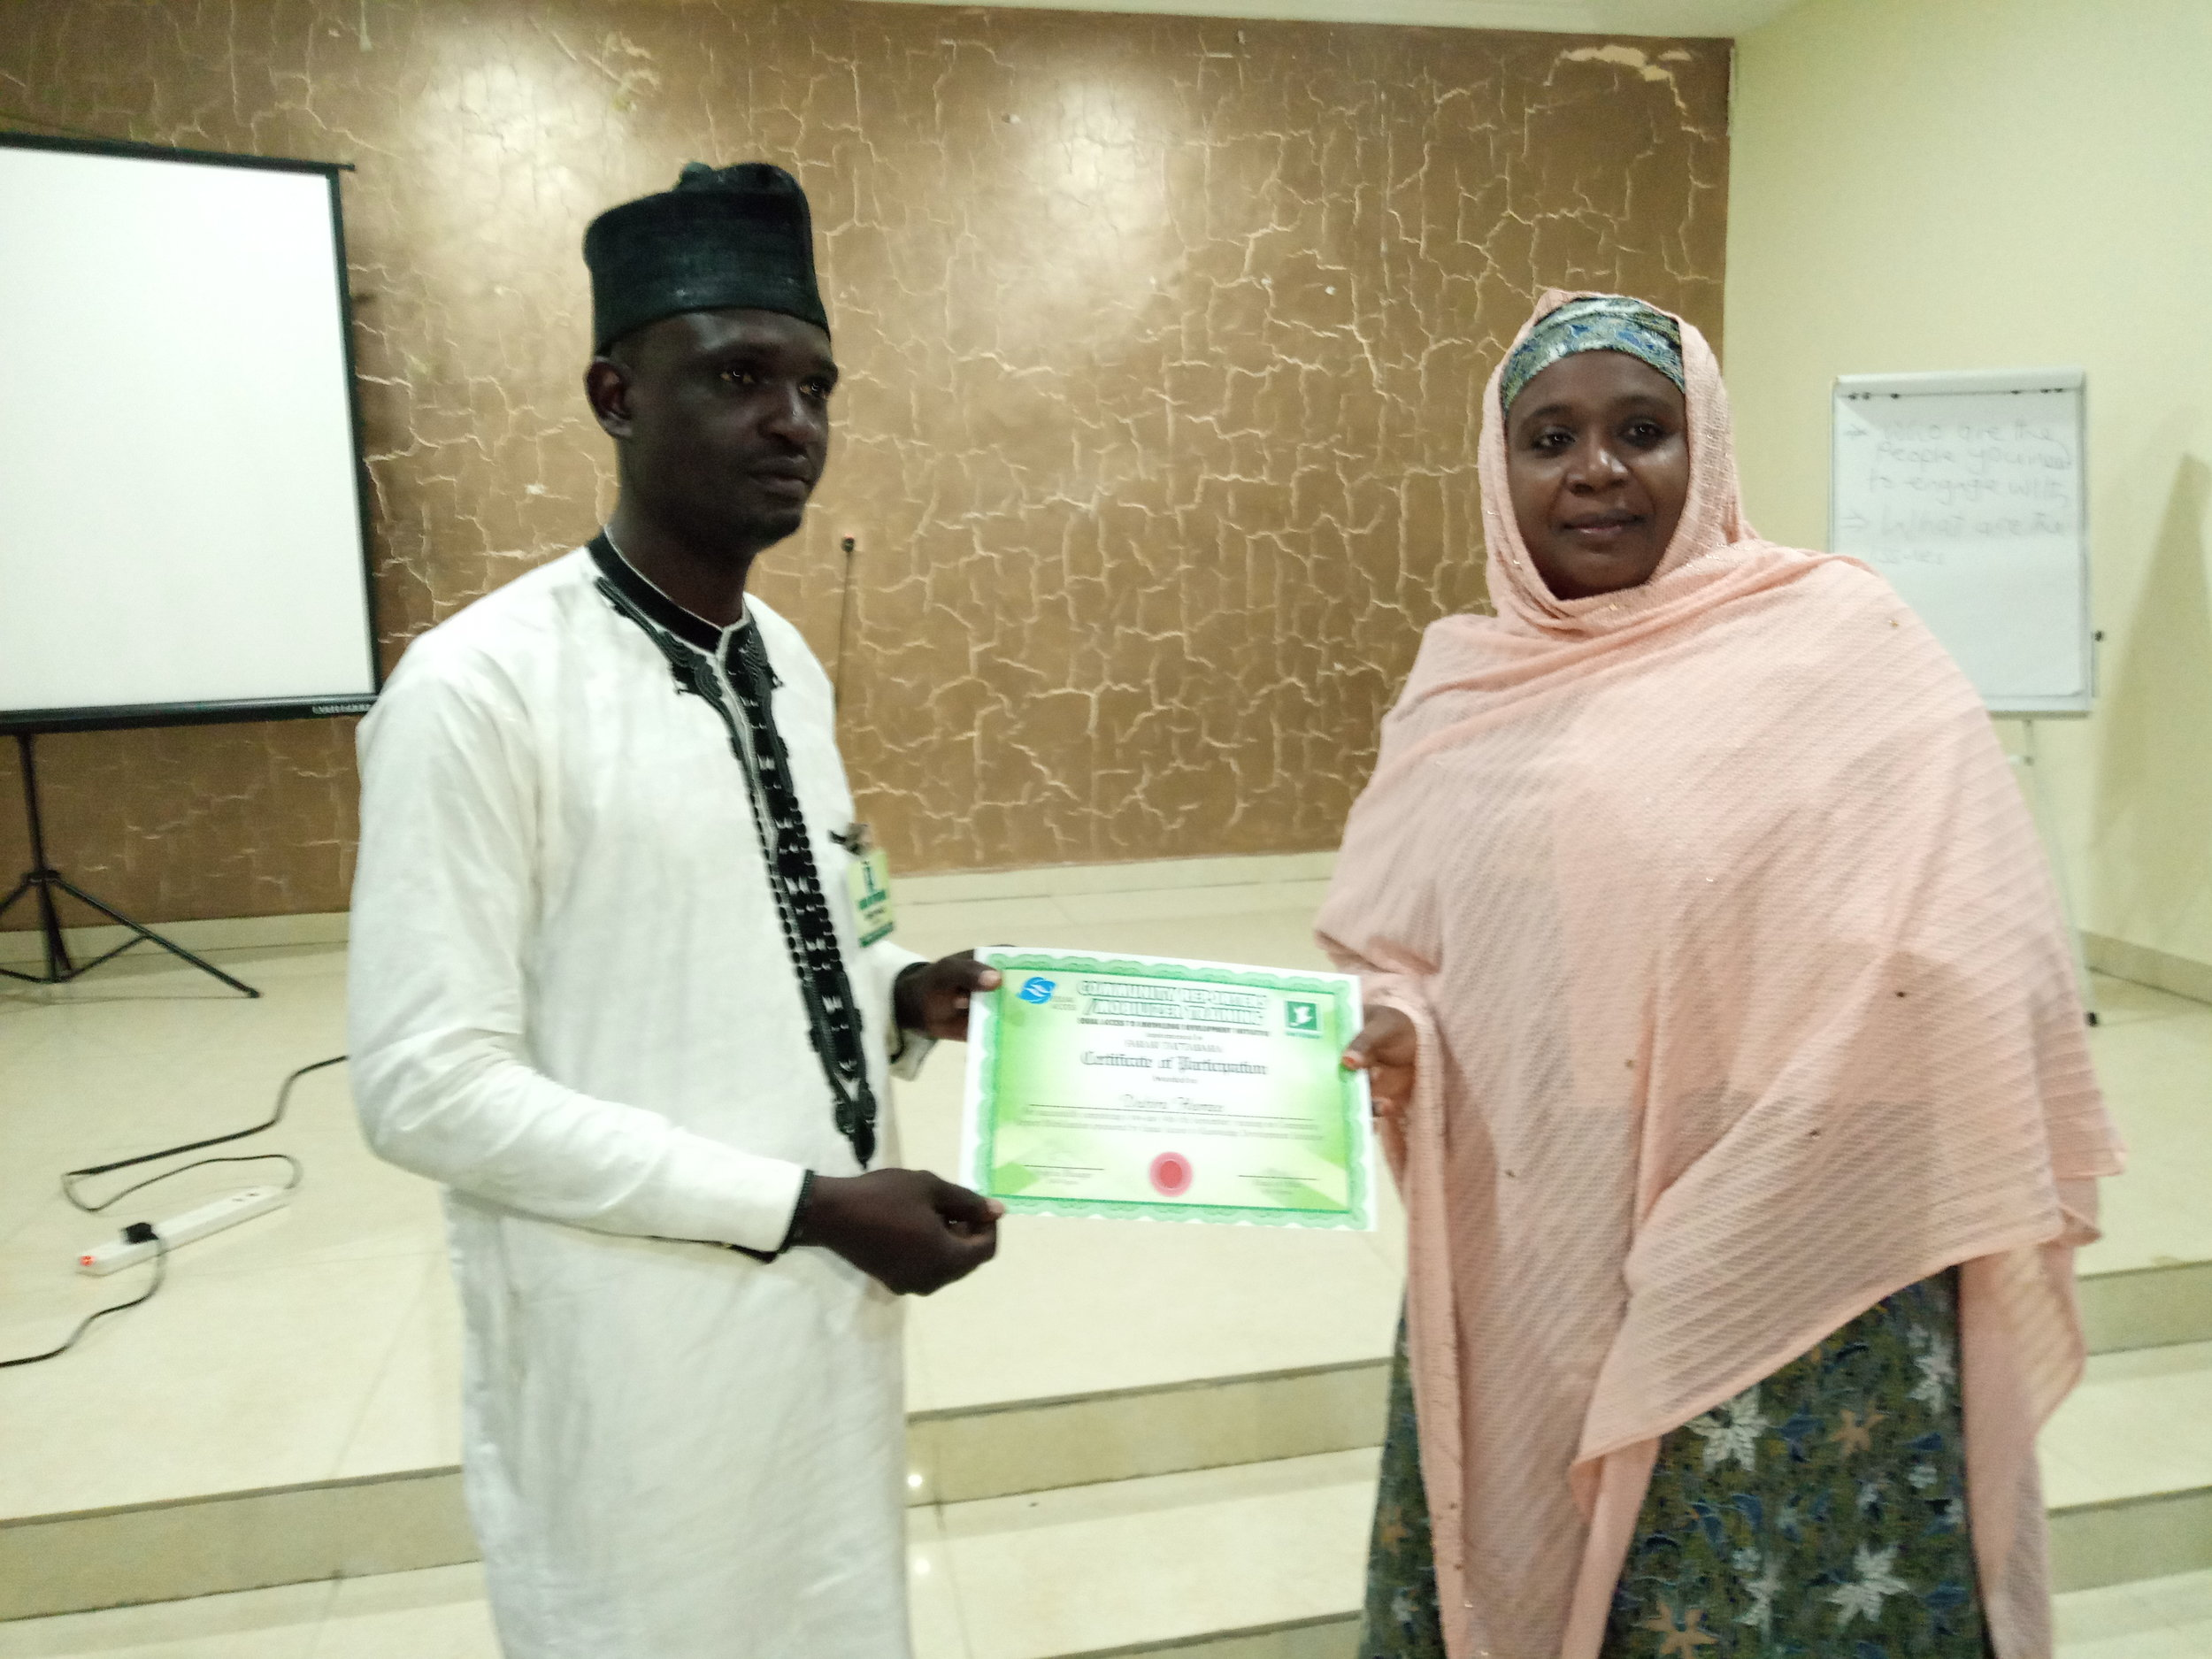 The Head of Office Maryam Muhammad presenting a certificate of completion to Dahiru Hamza from Nasarawa state after the 2-day training.